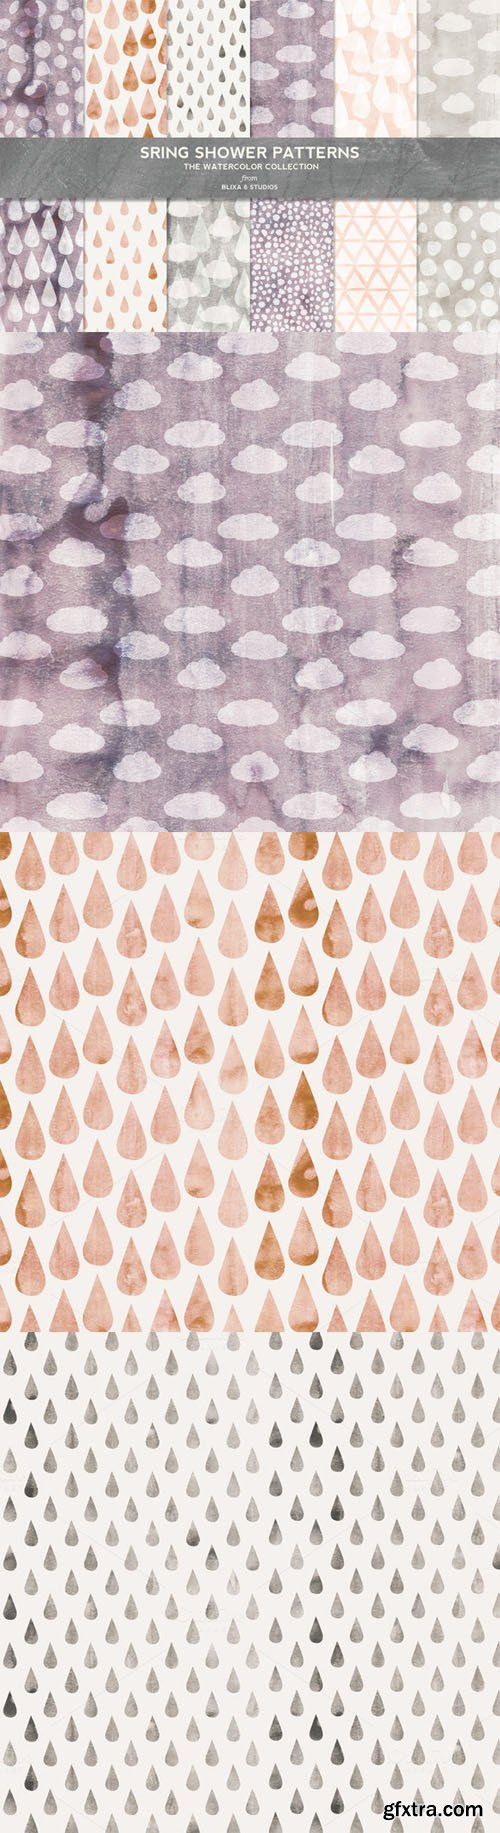 Spring Shower Watercolor Patterns - CM 238329